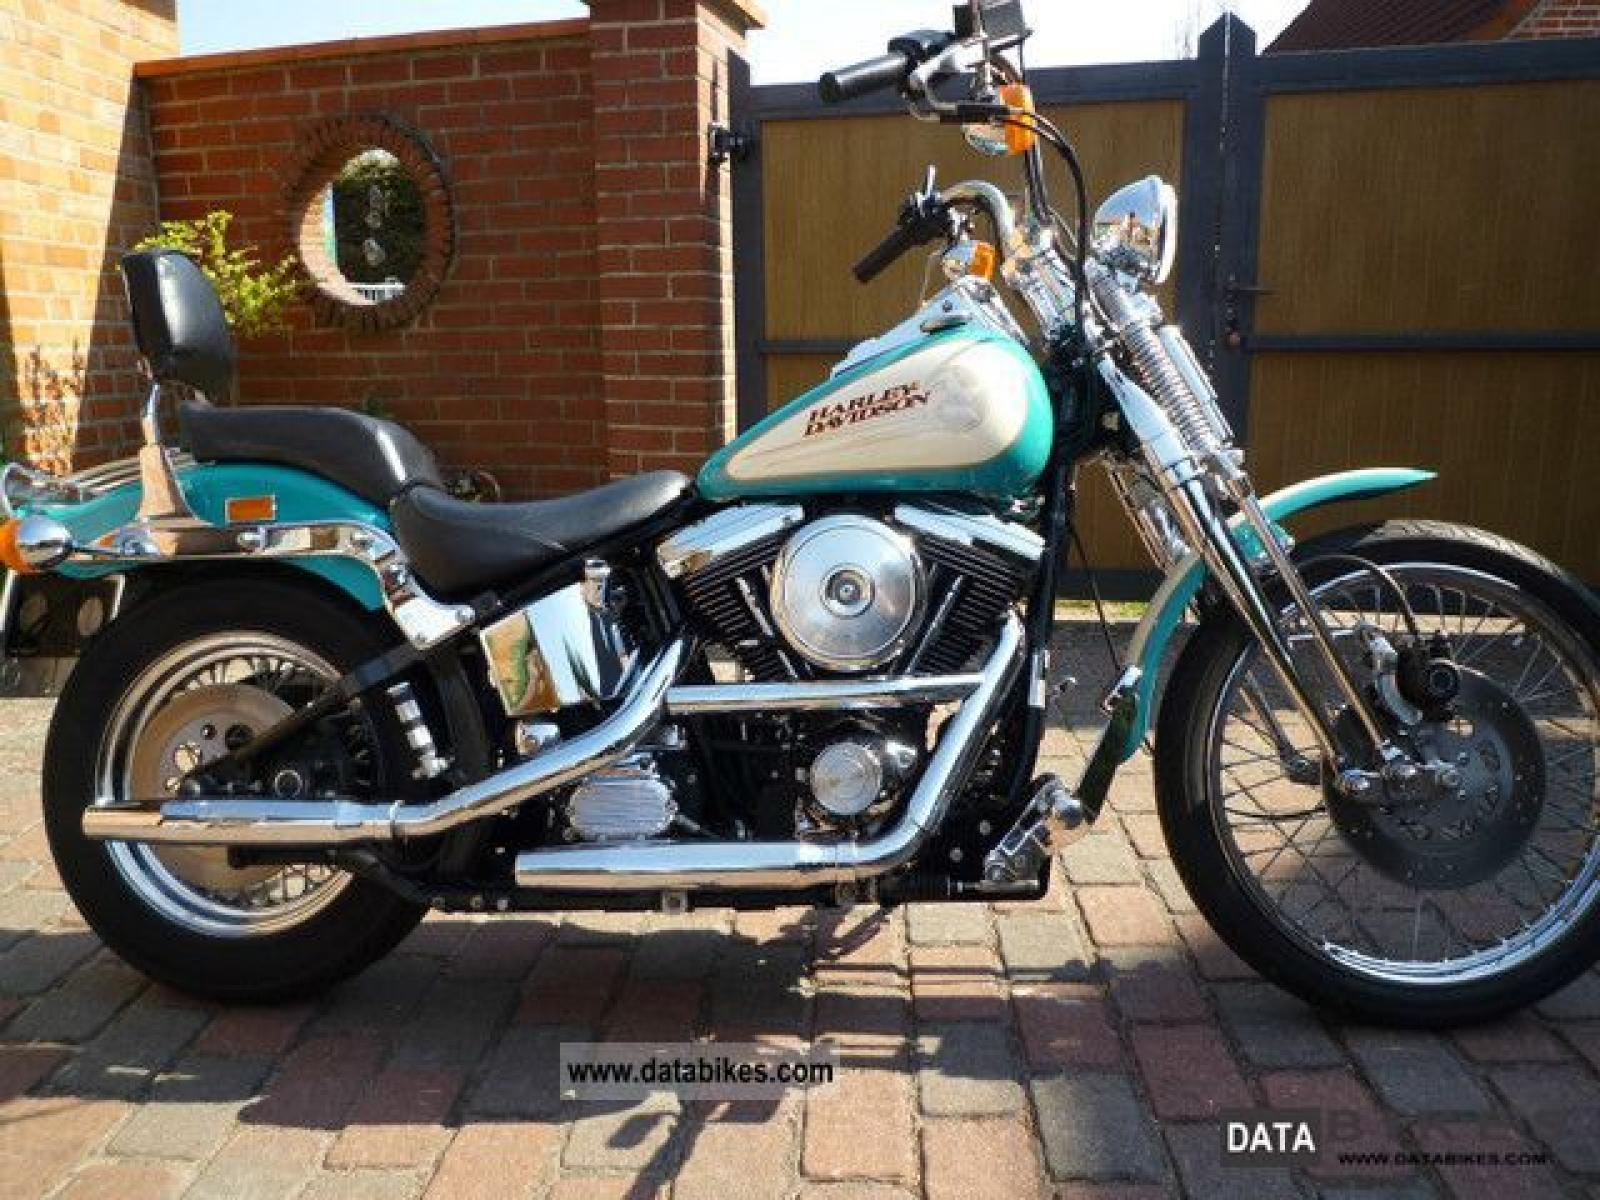 1992 Harley Davidson FXSTS Springer Softail Pics Specs And